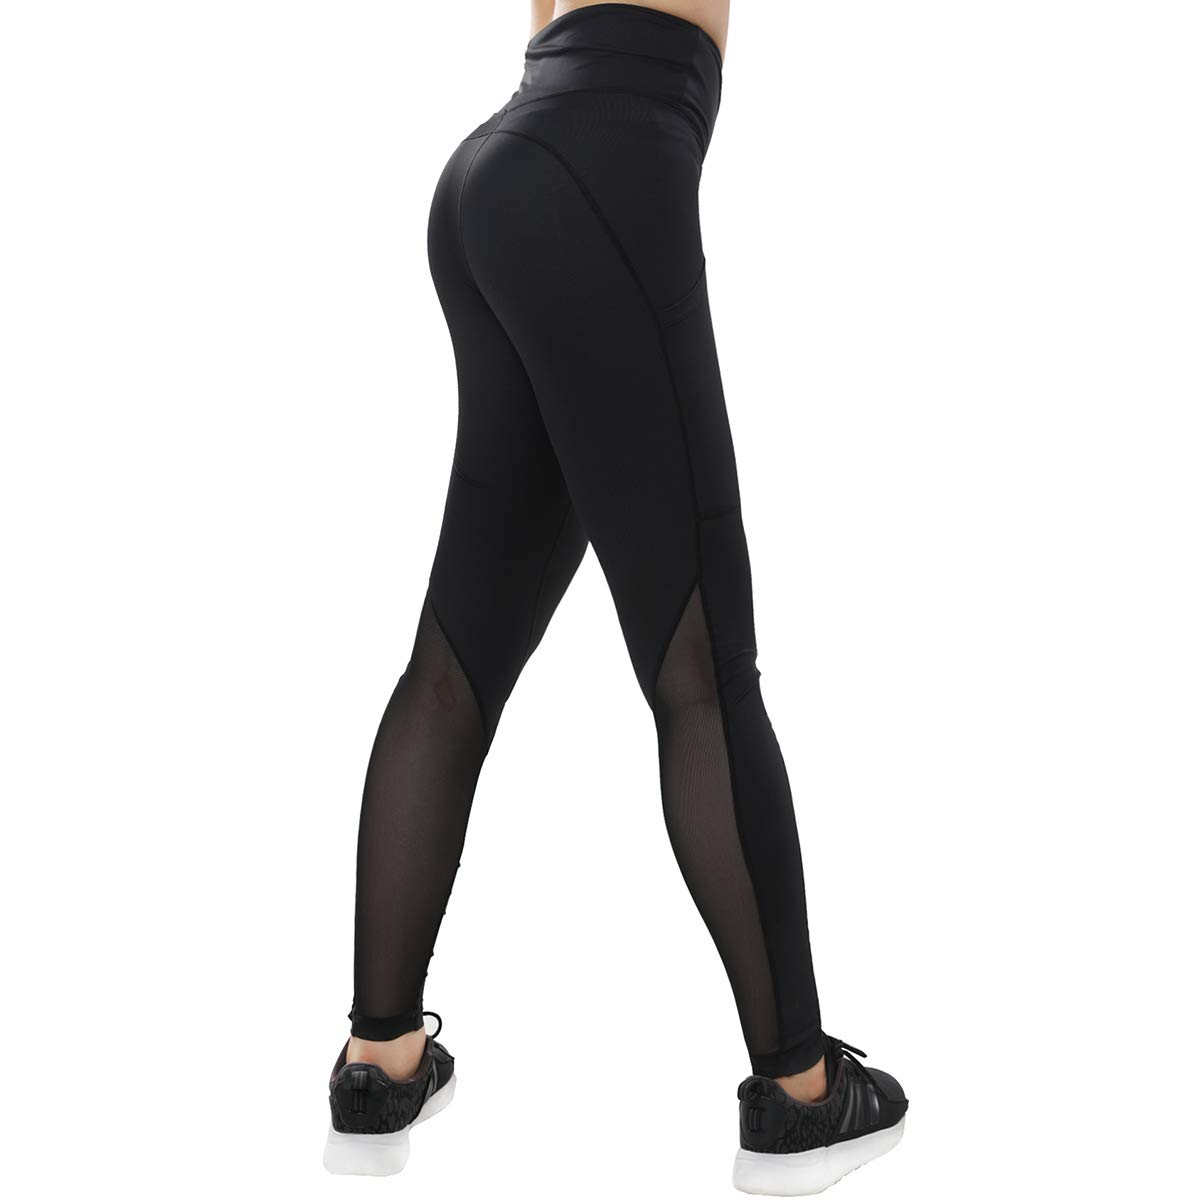 b14c8c5254e2 Amazon.com: Vaburs Women High Waist Athletic Leggings with Inside Small  Pocket and Outside Phone Pocket for Gym Workout,Yoga,Running: Clothing